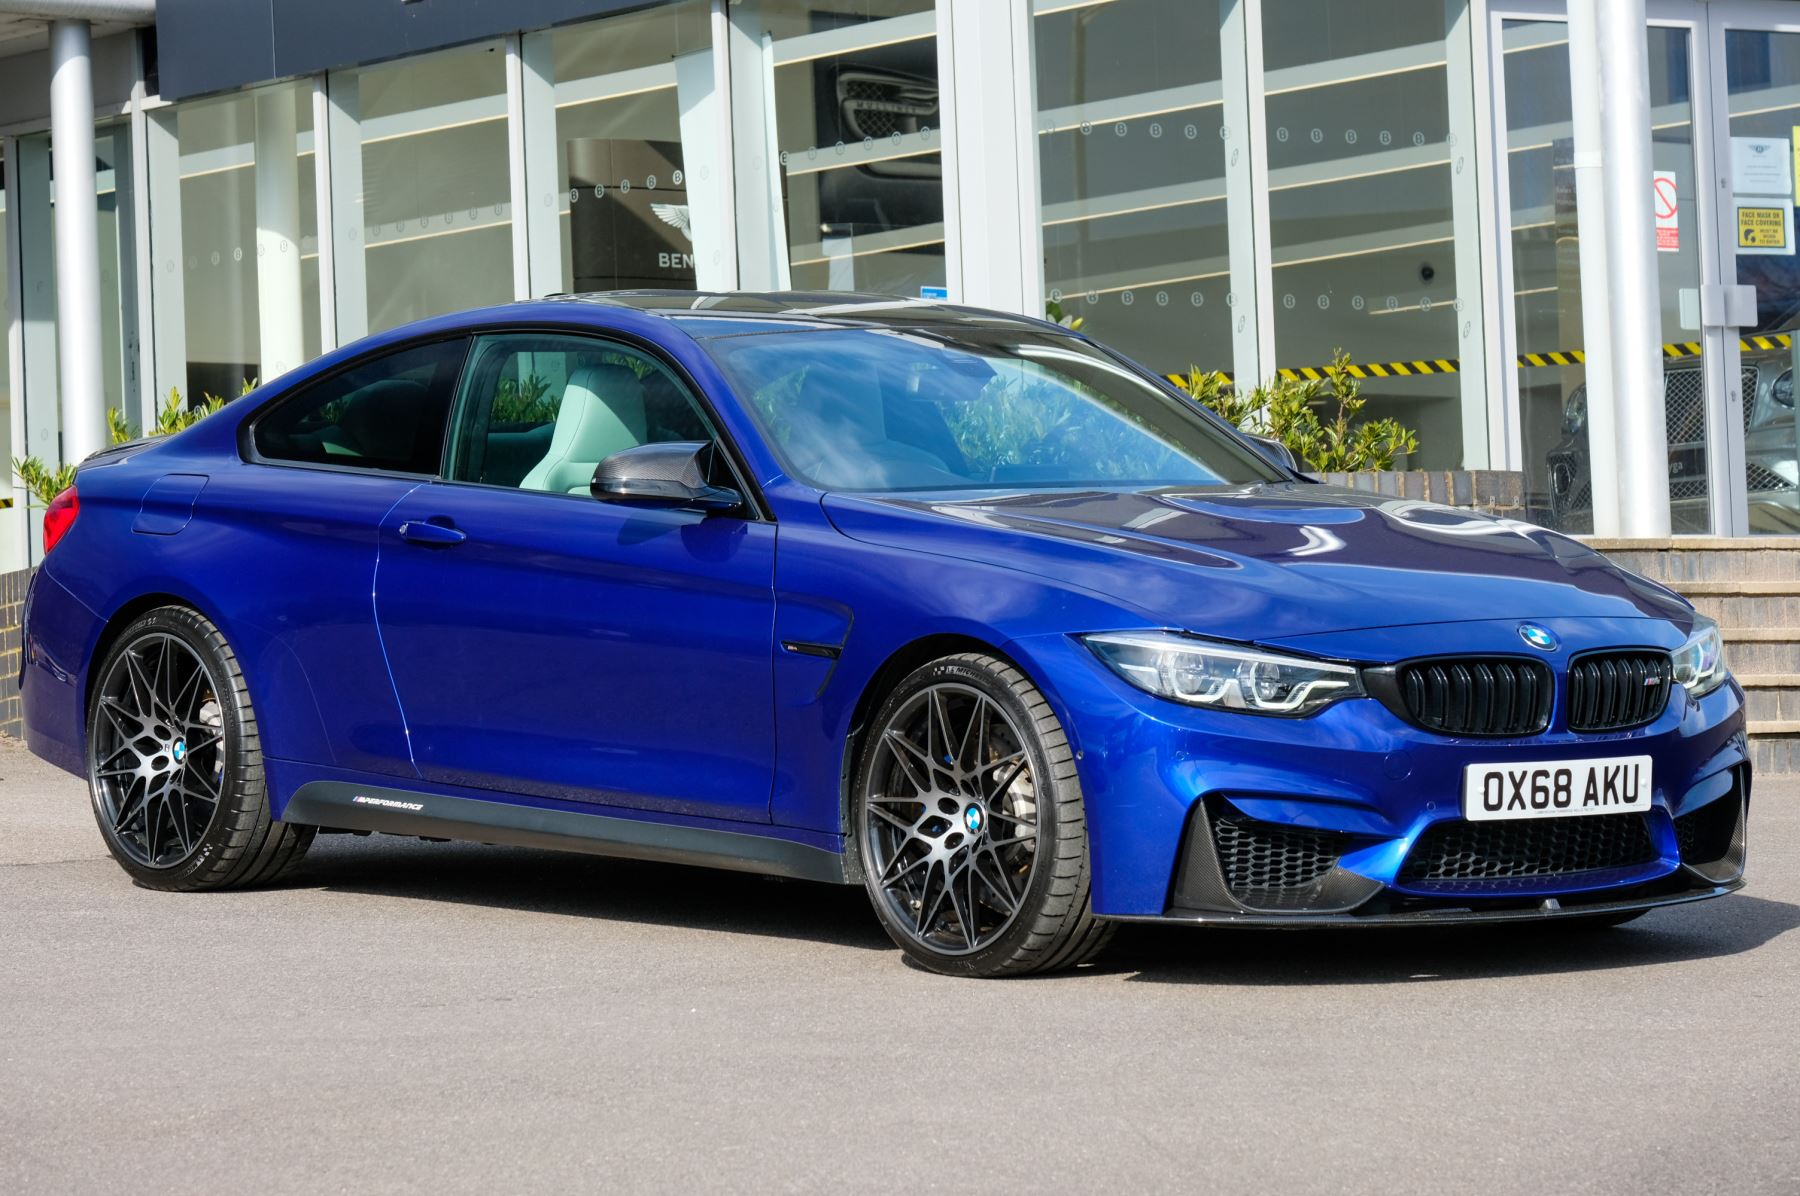 BMW M4 DCT [Competition Pack / Ultimate Pack ] 3.0 Automatic 2 door Coupe (2019)